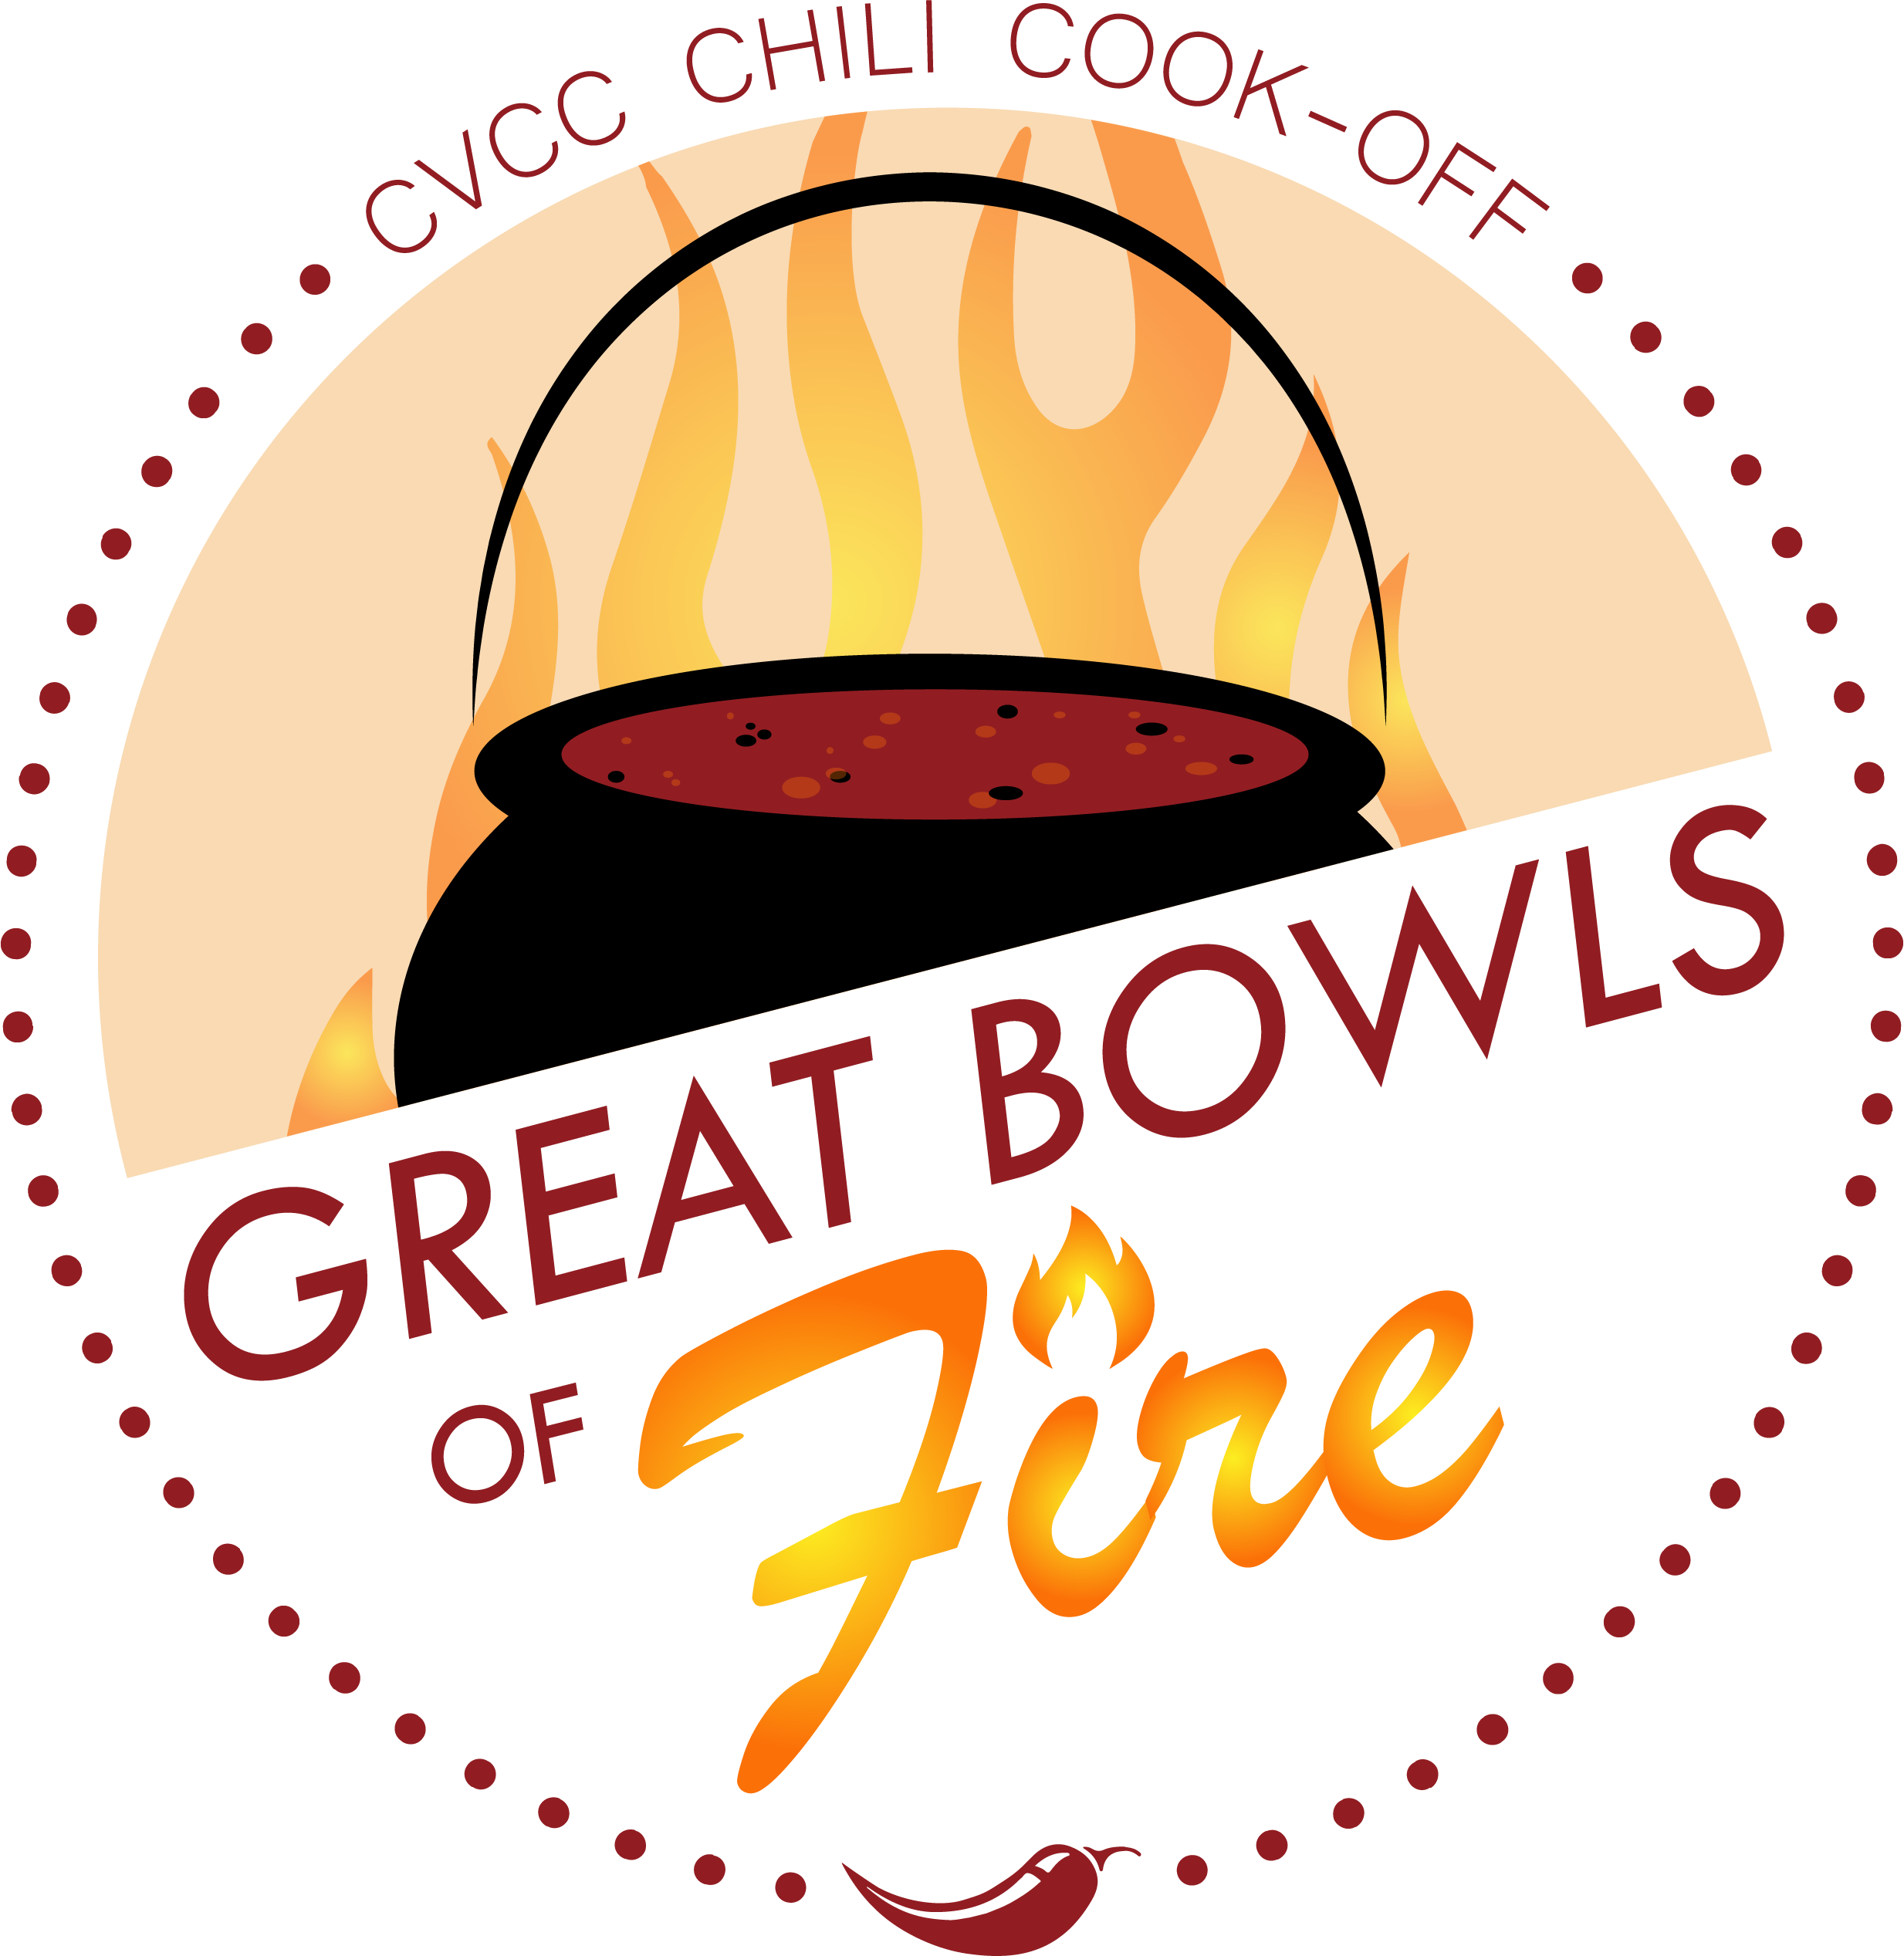 Great Bowls of Fire logo with graphic chili bowl